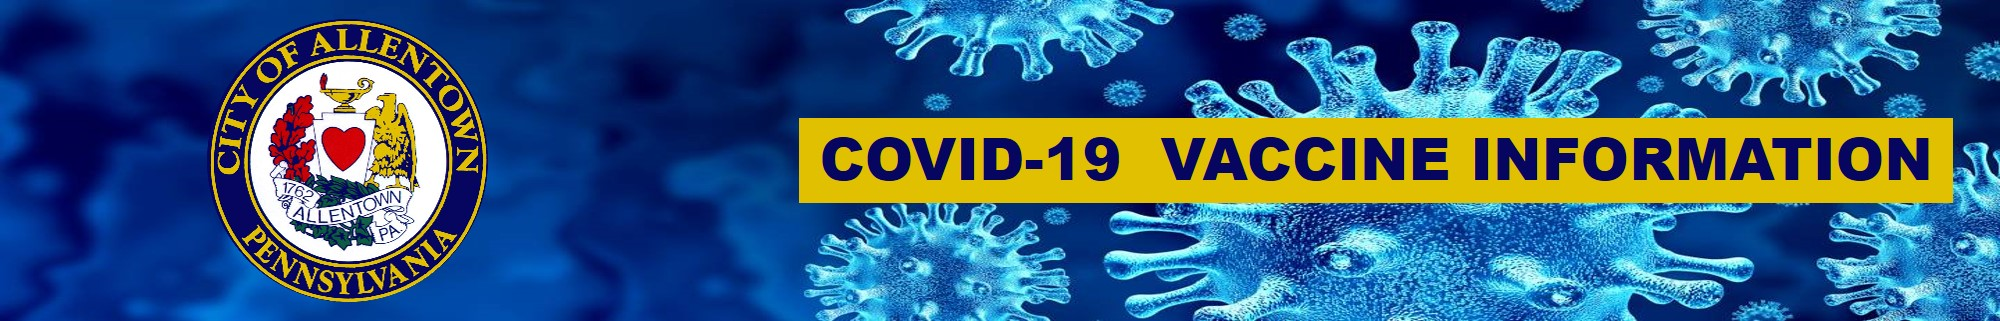 COVID-19 VaccineInformation